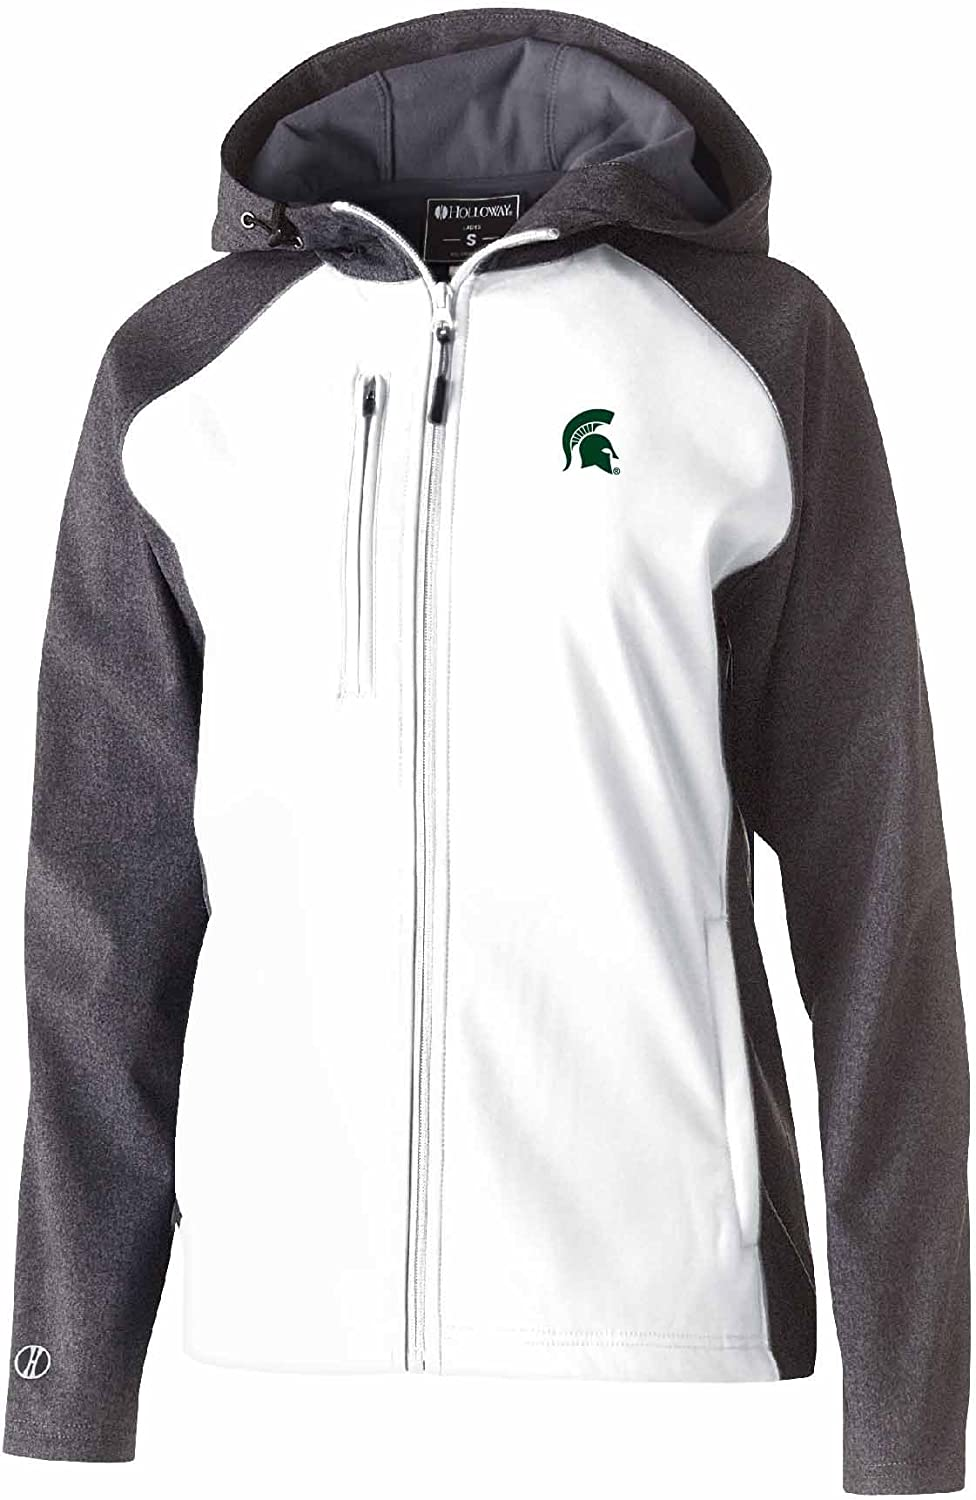 Ouray Sportswear NCAA womens Womens Deviate Pullover Jacket